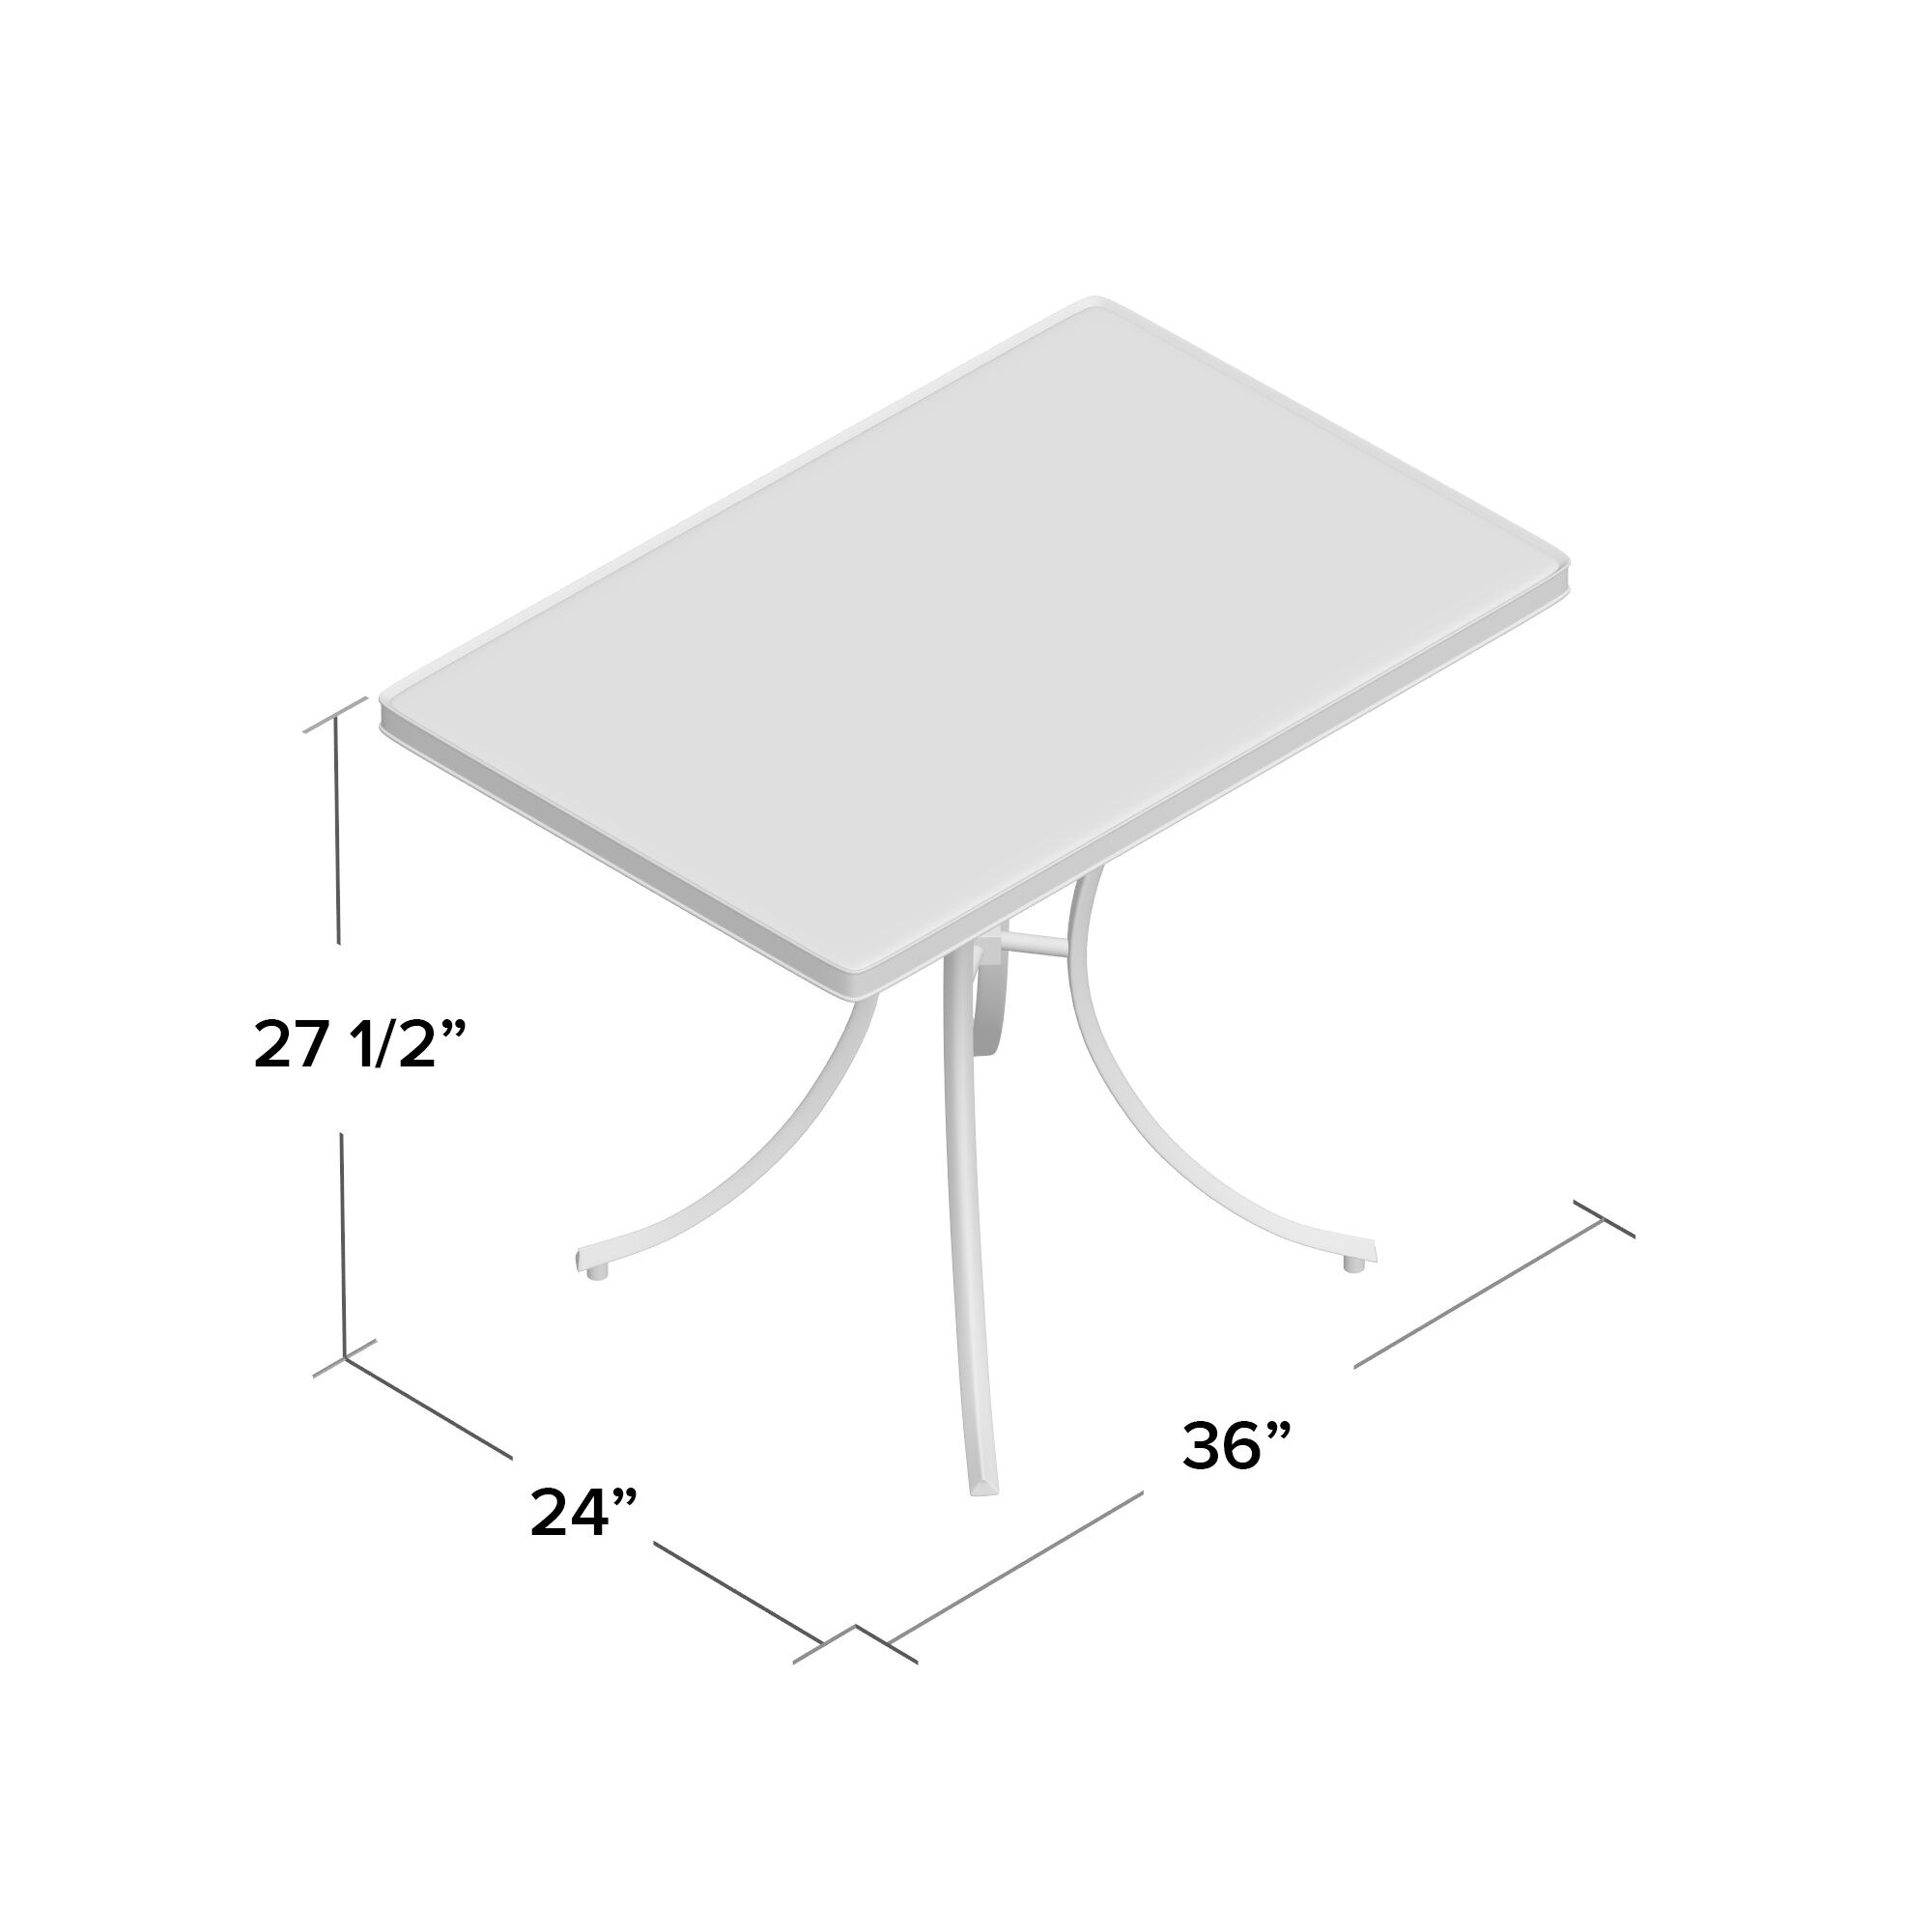 Dining Table Frame Color: Mocha, Umbrella Hole: Yes